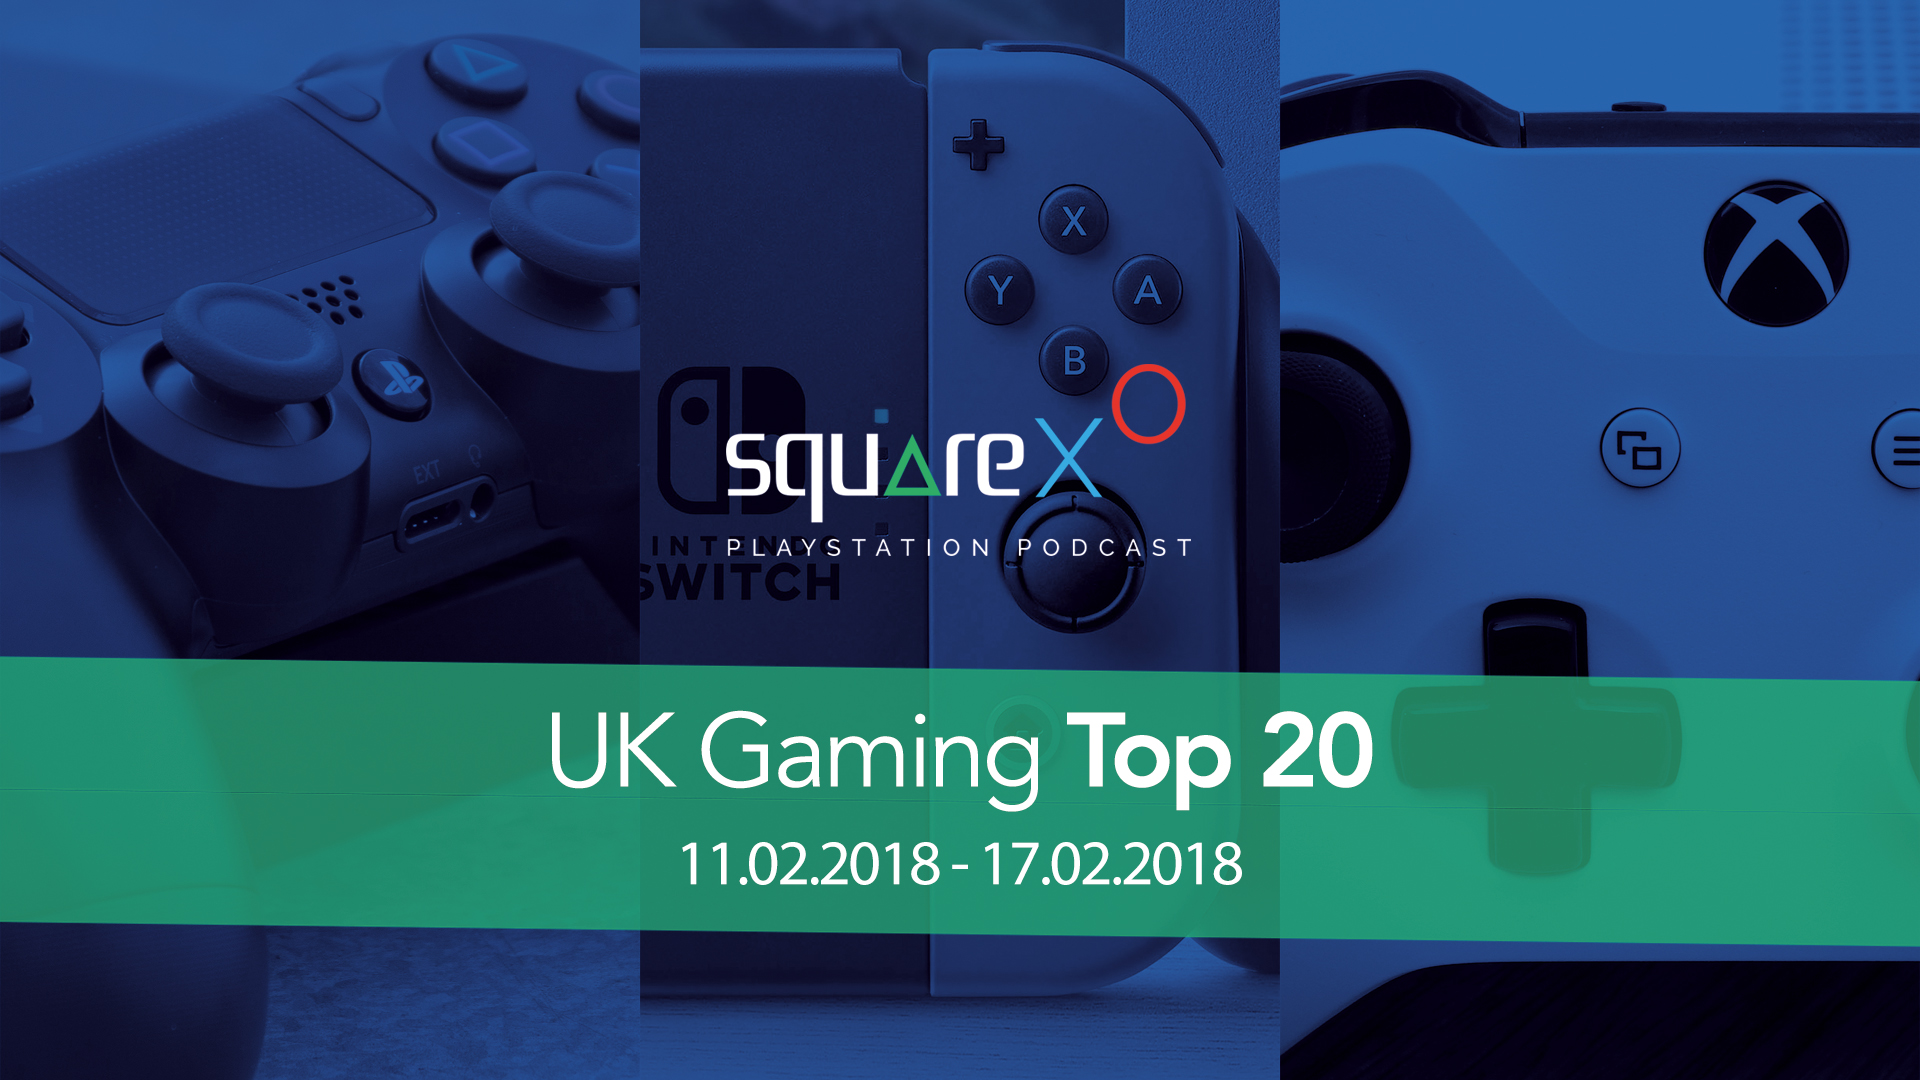 UK Weekly Top 20 Games for 11/02/18 – 17/02/18